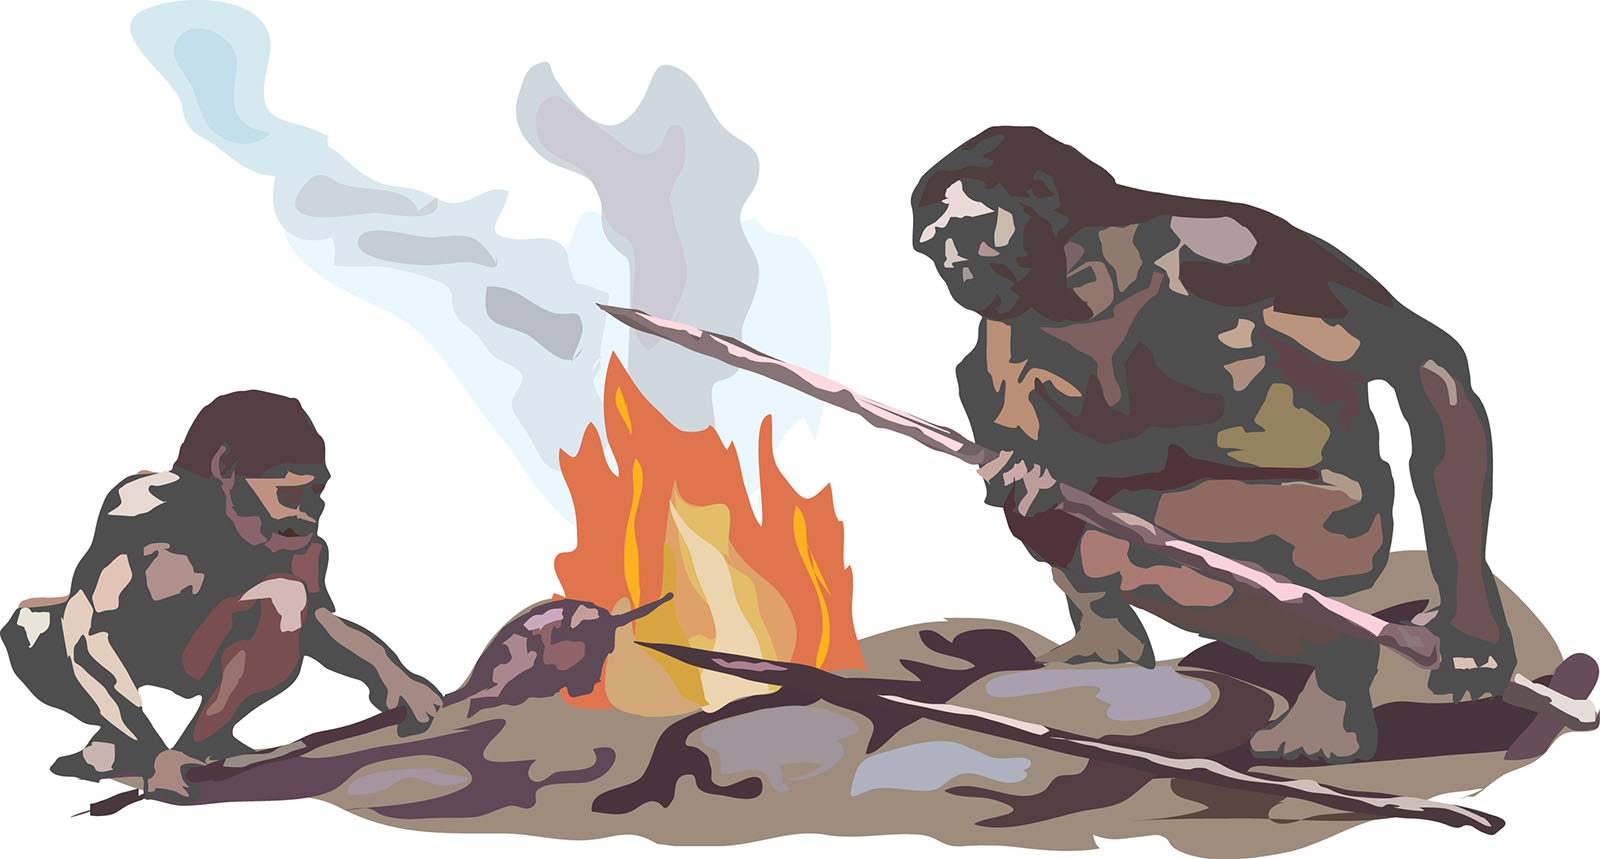 Glue Production Is Not Evidence for Neanderthal Exceptionalism